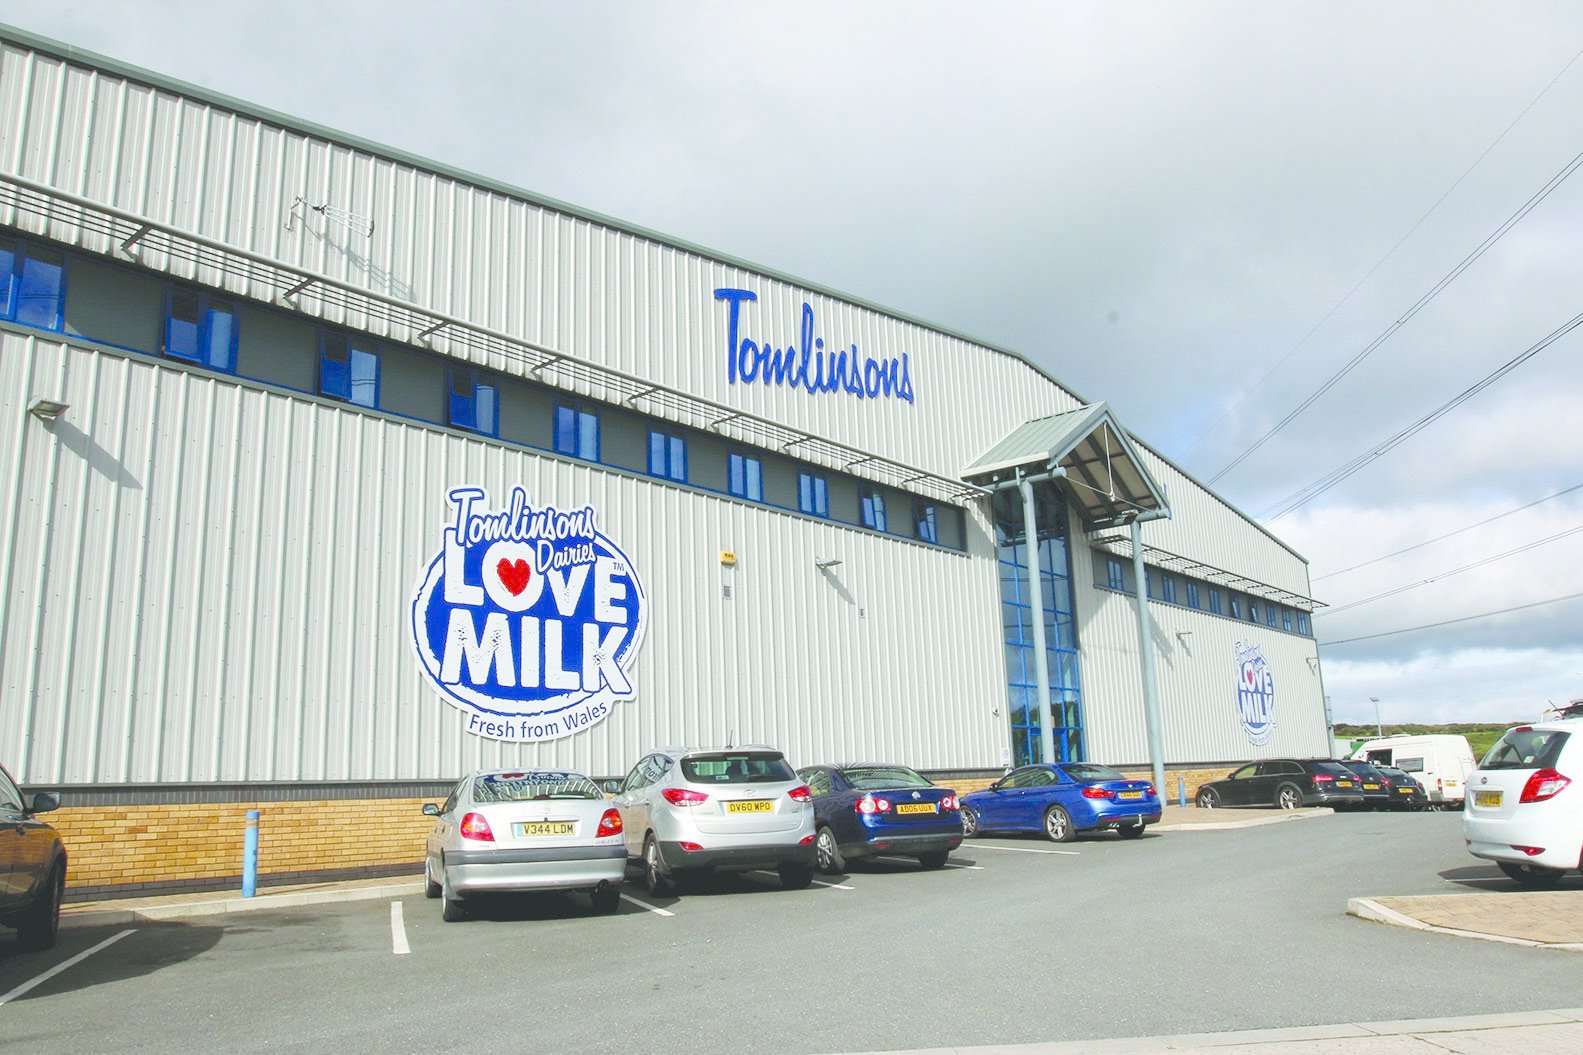 Tomlinsons Dairies: Call for answers after Wrexham dairy firm stops taking farmers' milk